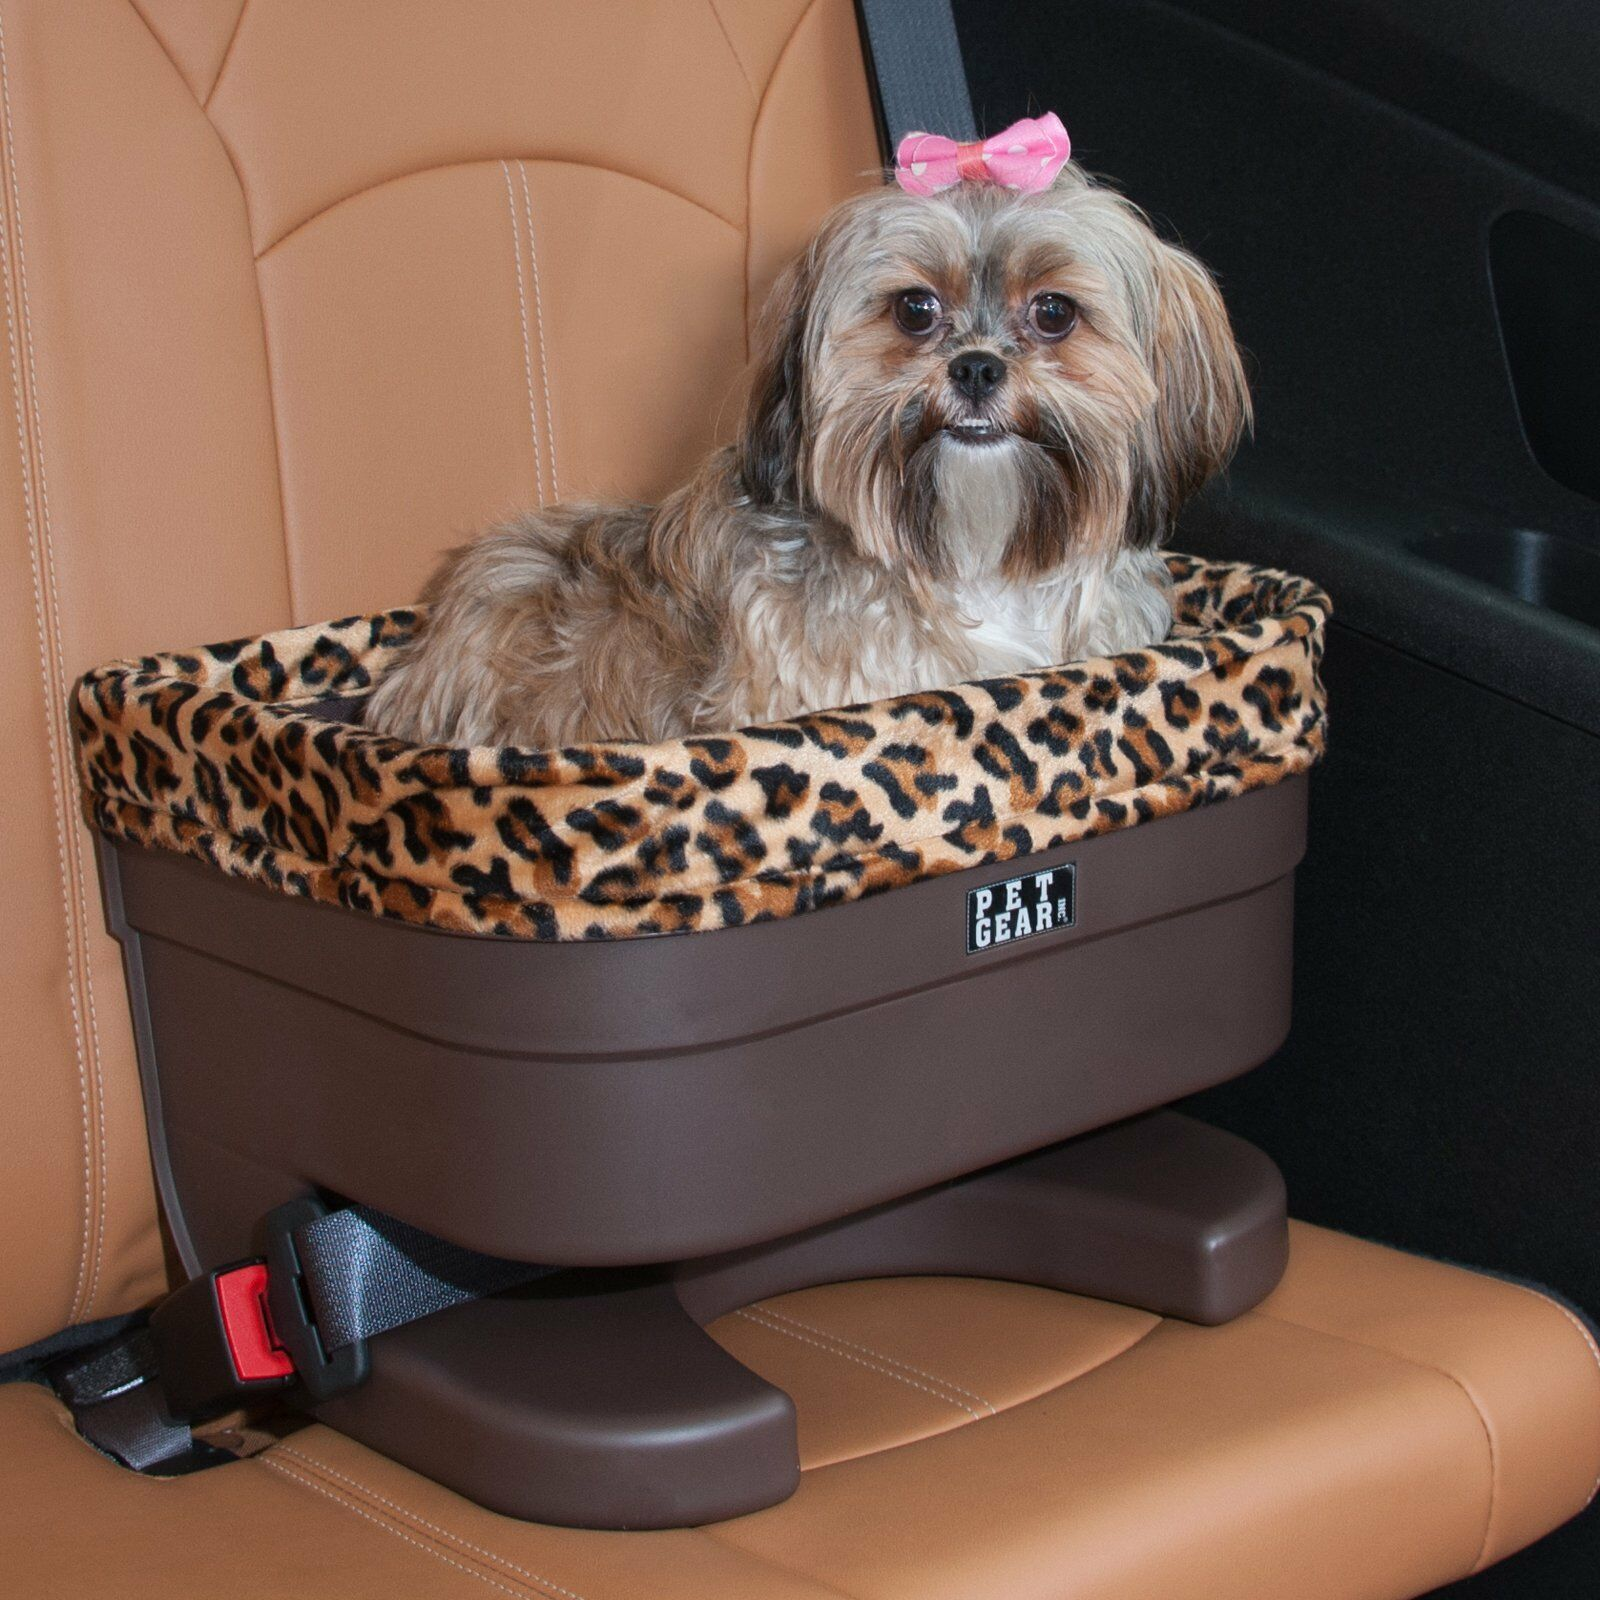 Pet Gear Dog Pet Elevated Raised Booster Car Seat Carrier Ja